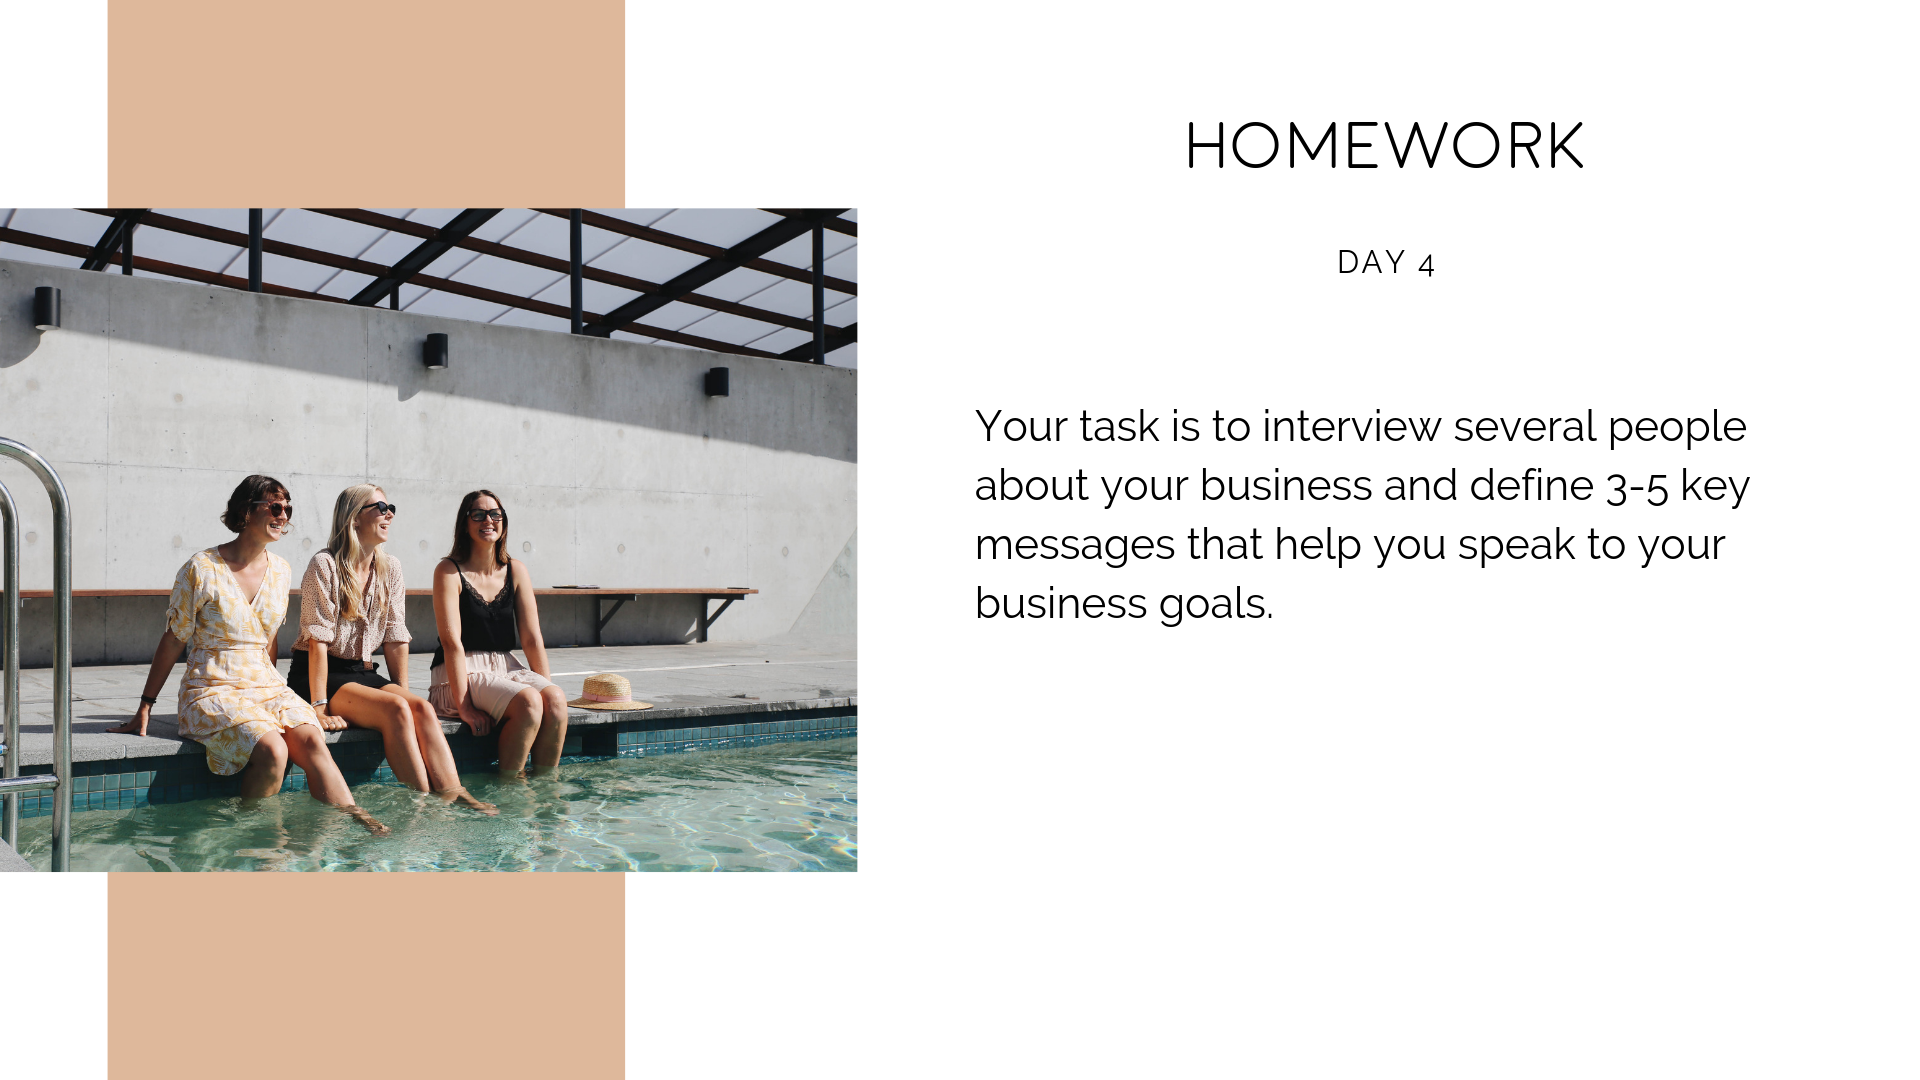 How to DIY your PR homework day 4